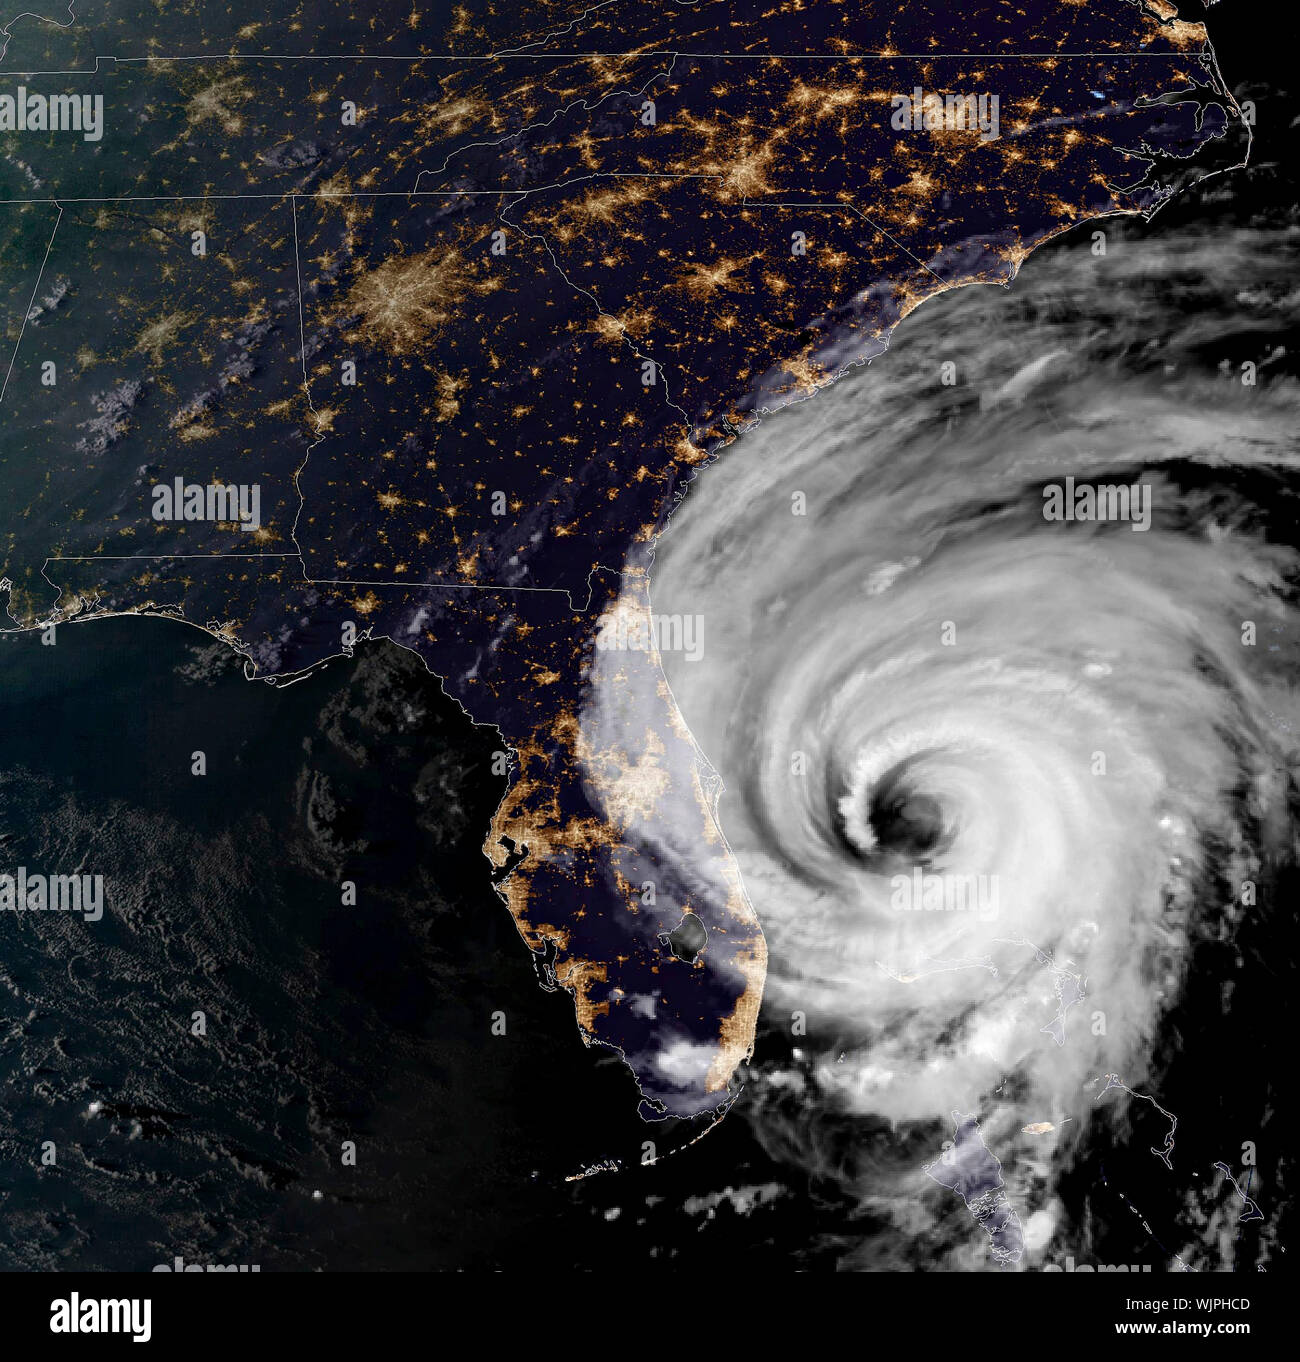 The NOAA GOES-16 satellite showing a night view of catastrophic Hurricane Dorian as it begins moving up the coast of Florida as a Category 2 storm September 3, 2019 in the Atlantic Ocean. Dorian struck the small island nation as a Category 5 storm with winds of 185 mph and has now downgraded to Category 2 and is slowly creeping along the coast of Florida. Credit: NOAA/Planetpix/Alamy Live News Credit: Planetpix/Alamy Live News Stock Photo